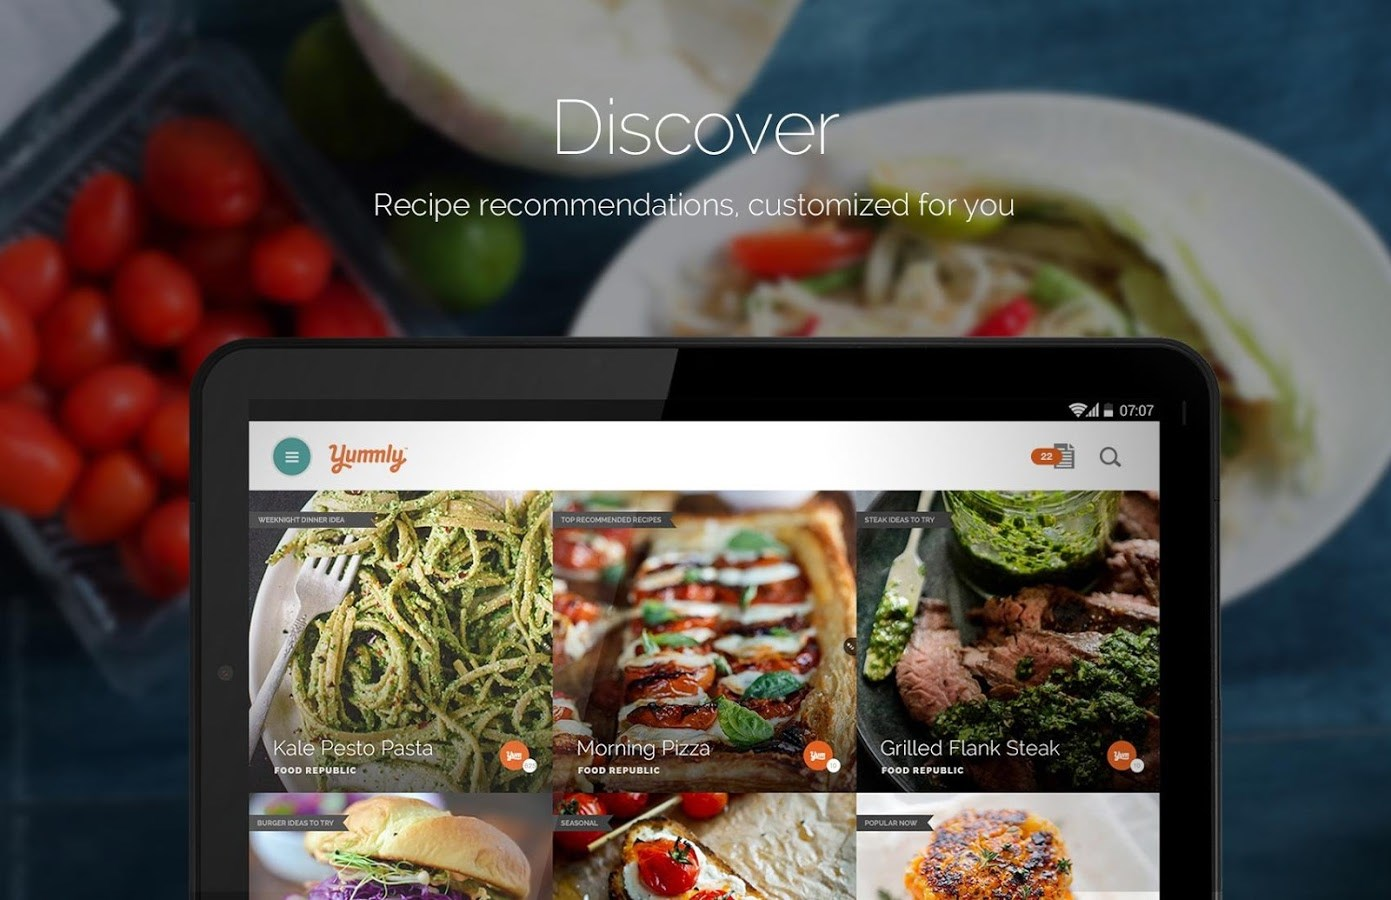 Yummly Recipes & Shopping List - Imagem 1 do software